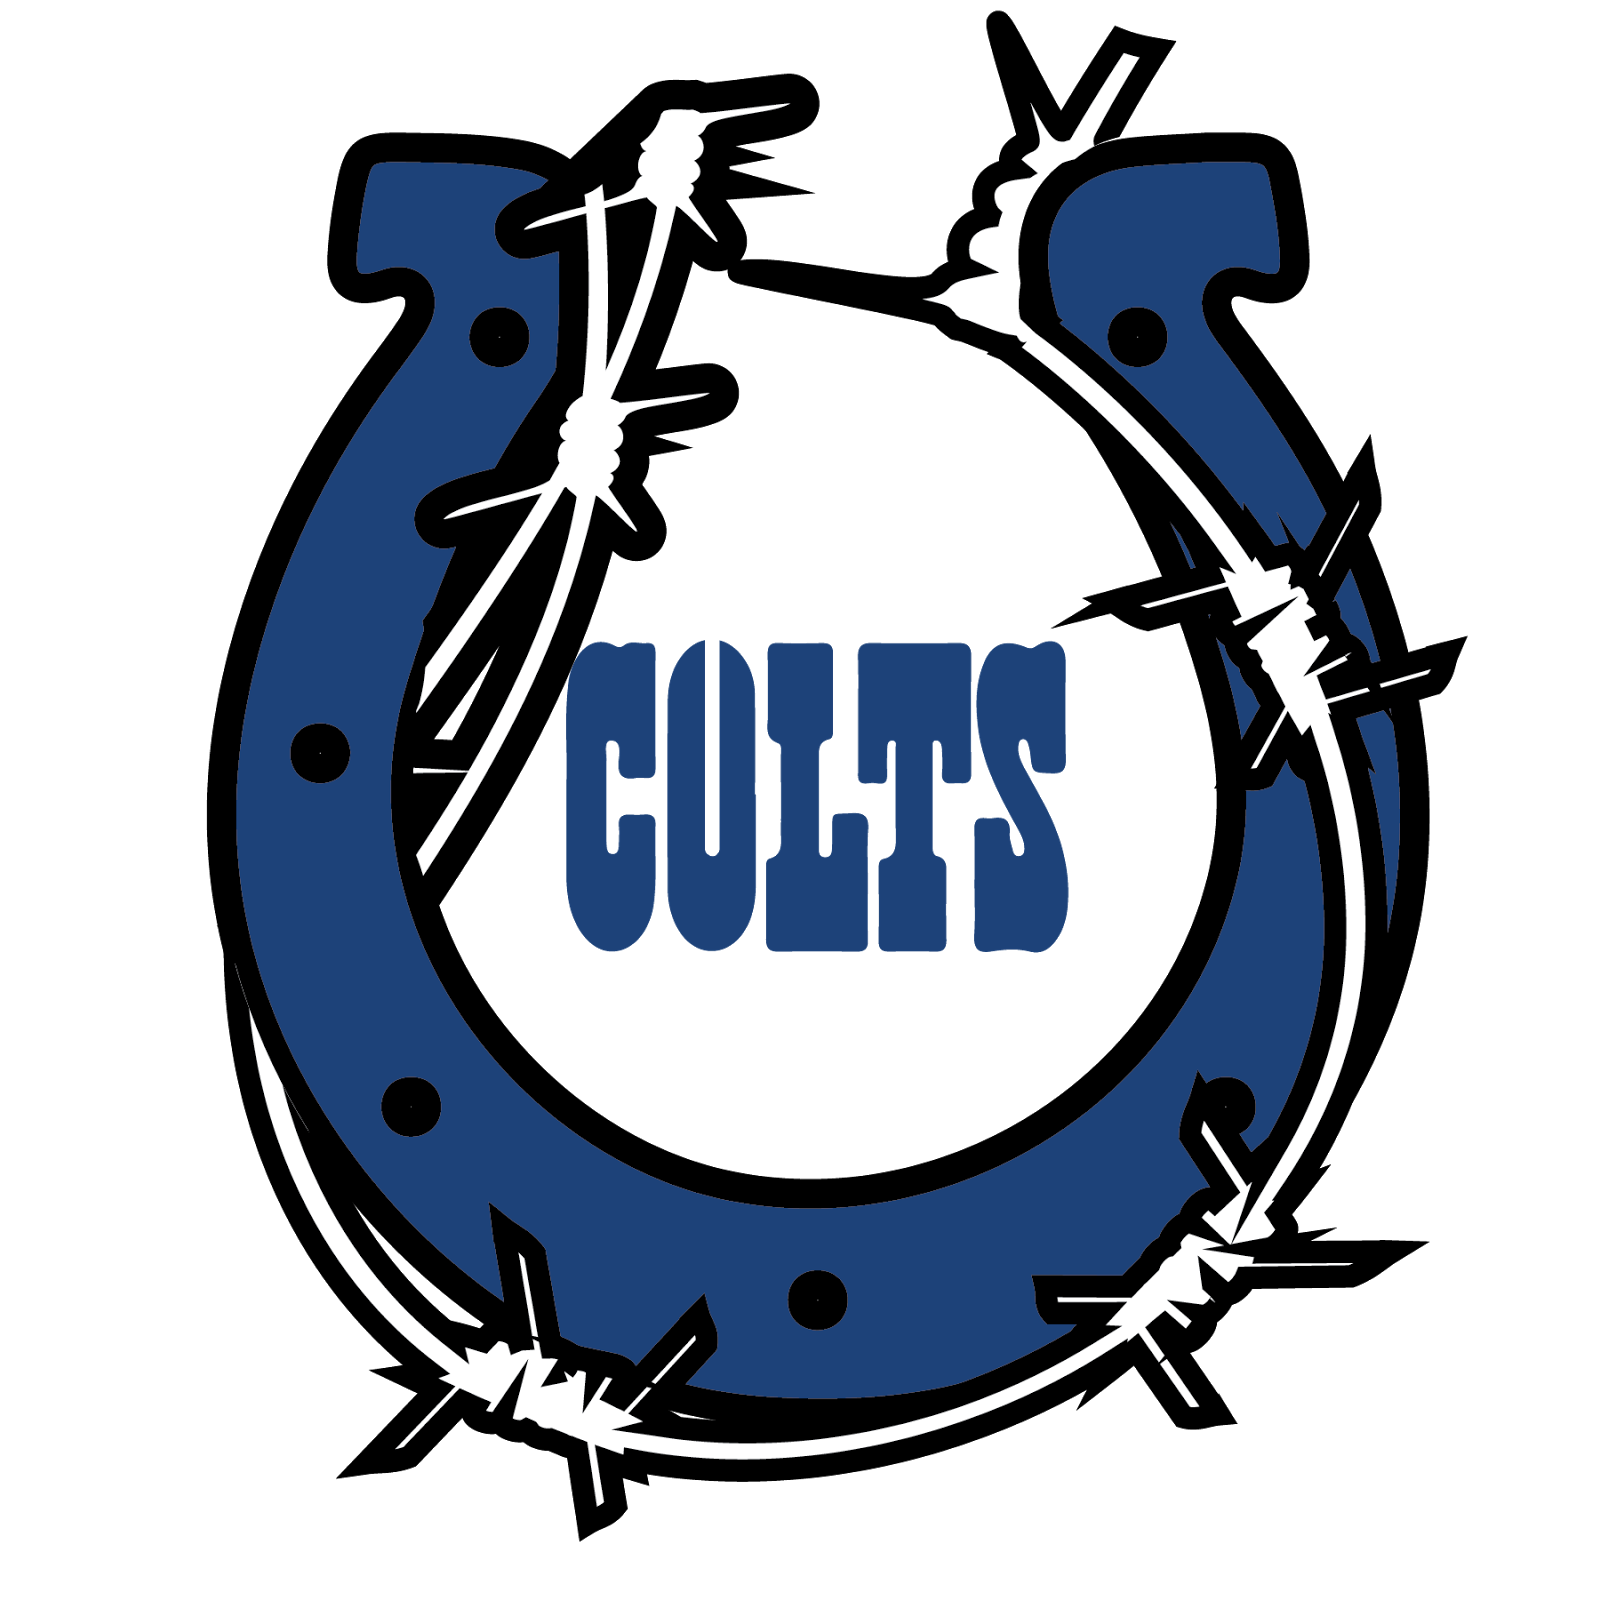 Indianapolis Colts, metal, logo, re-imagined